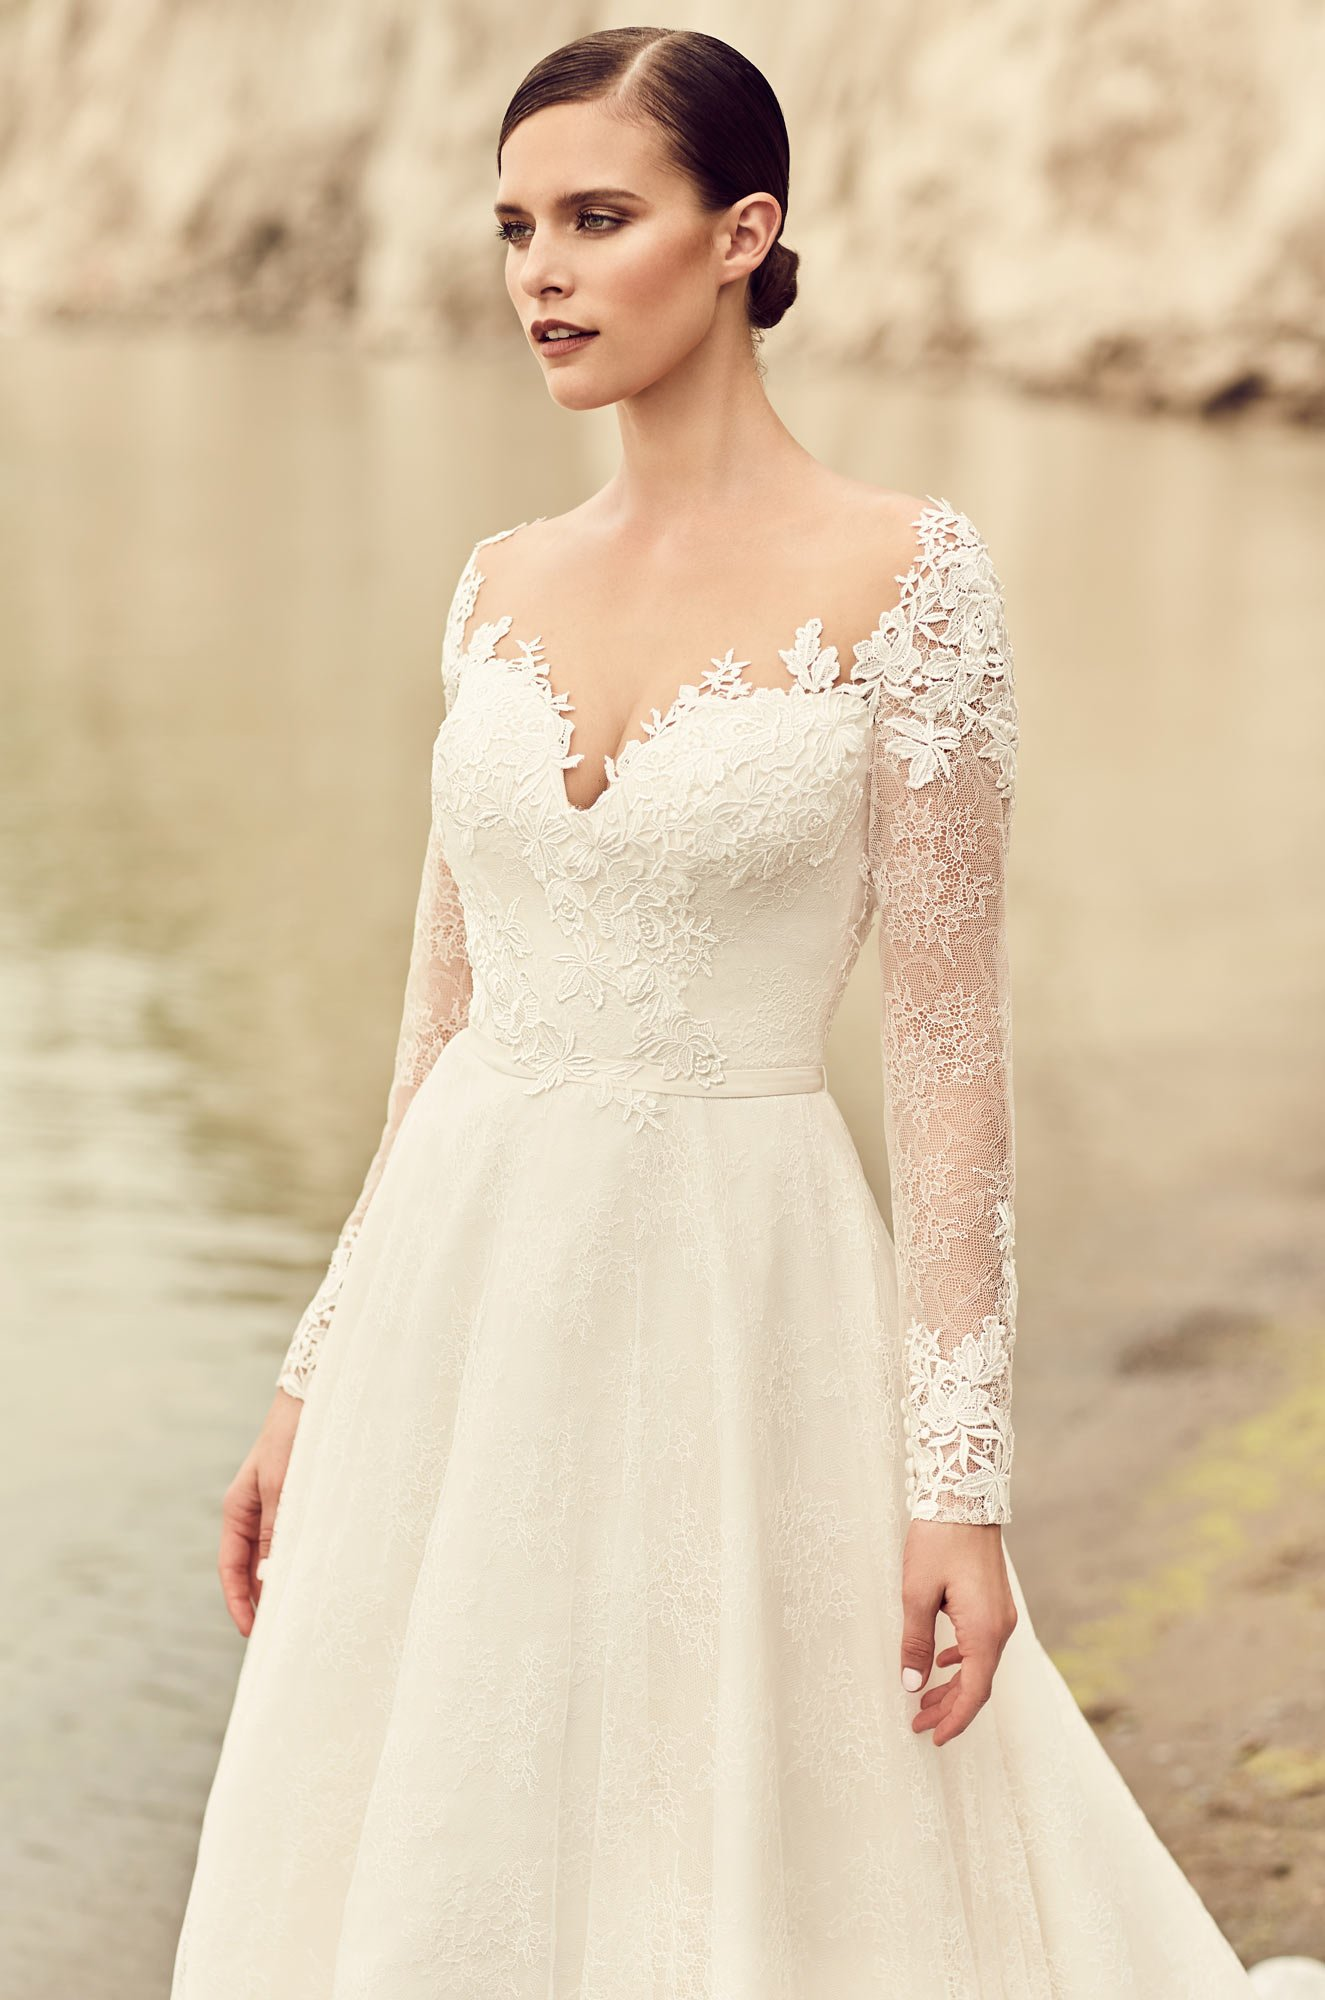 Embroidered Long Sleeve Wedding Dress - Style #2118 | Mikaella Bridal